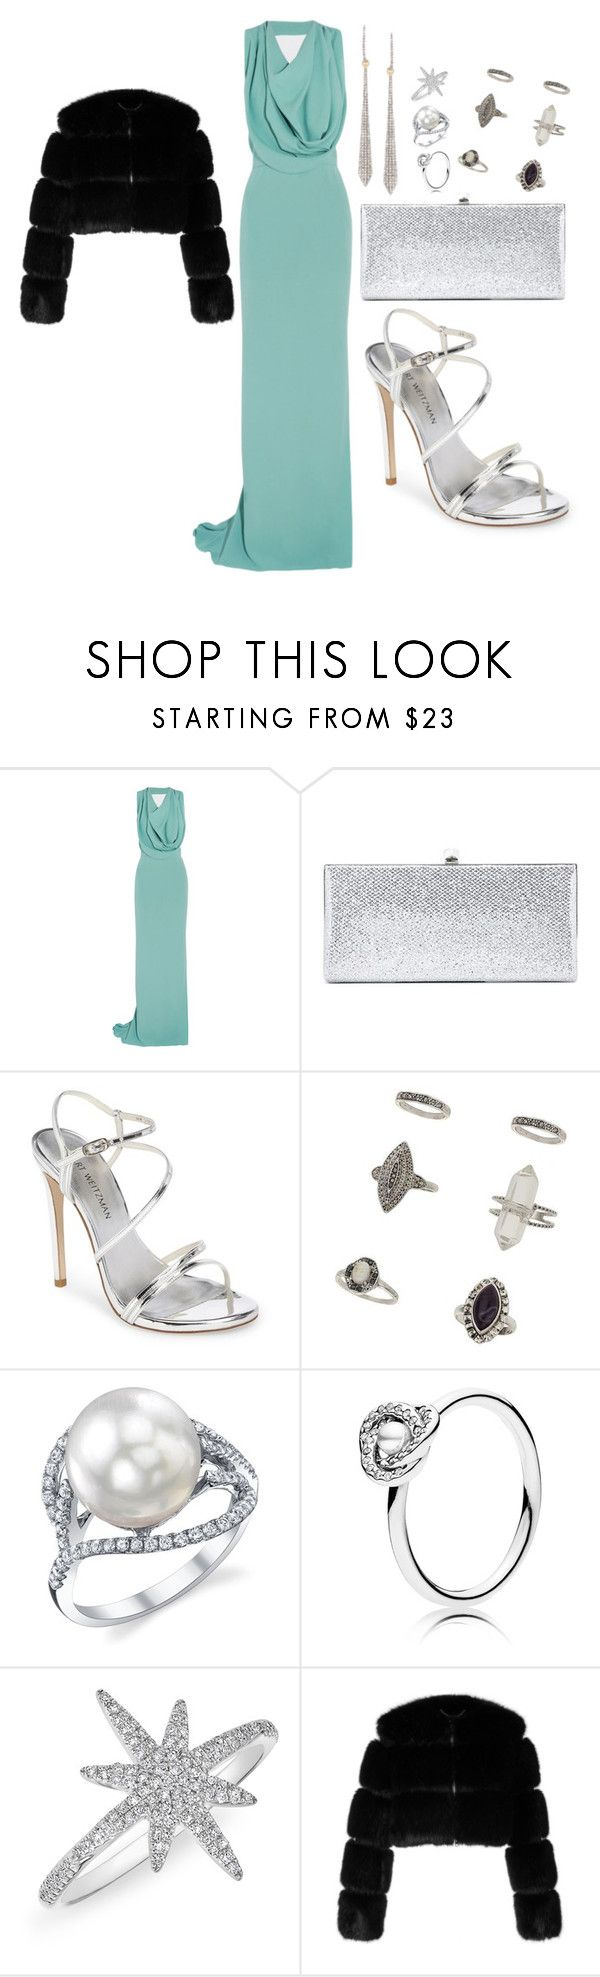 Clean by amystyles-i on Polyvore featuring mode, Maria Grachvogel, Givenchy, Stuart Weitzman, Jimmy Choo, Miss Selfridge, Ross-Simons, Anne Sisteron and Pandora